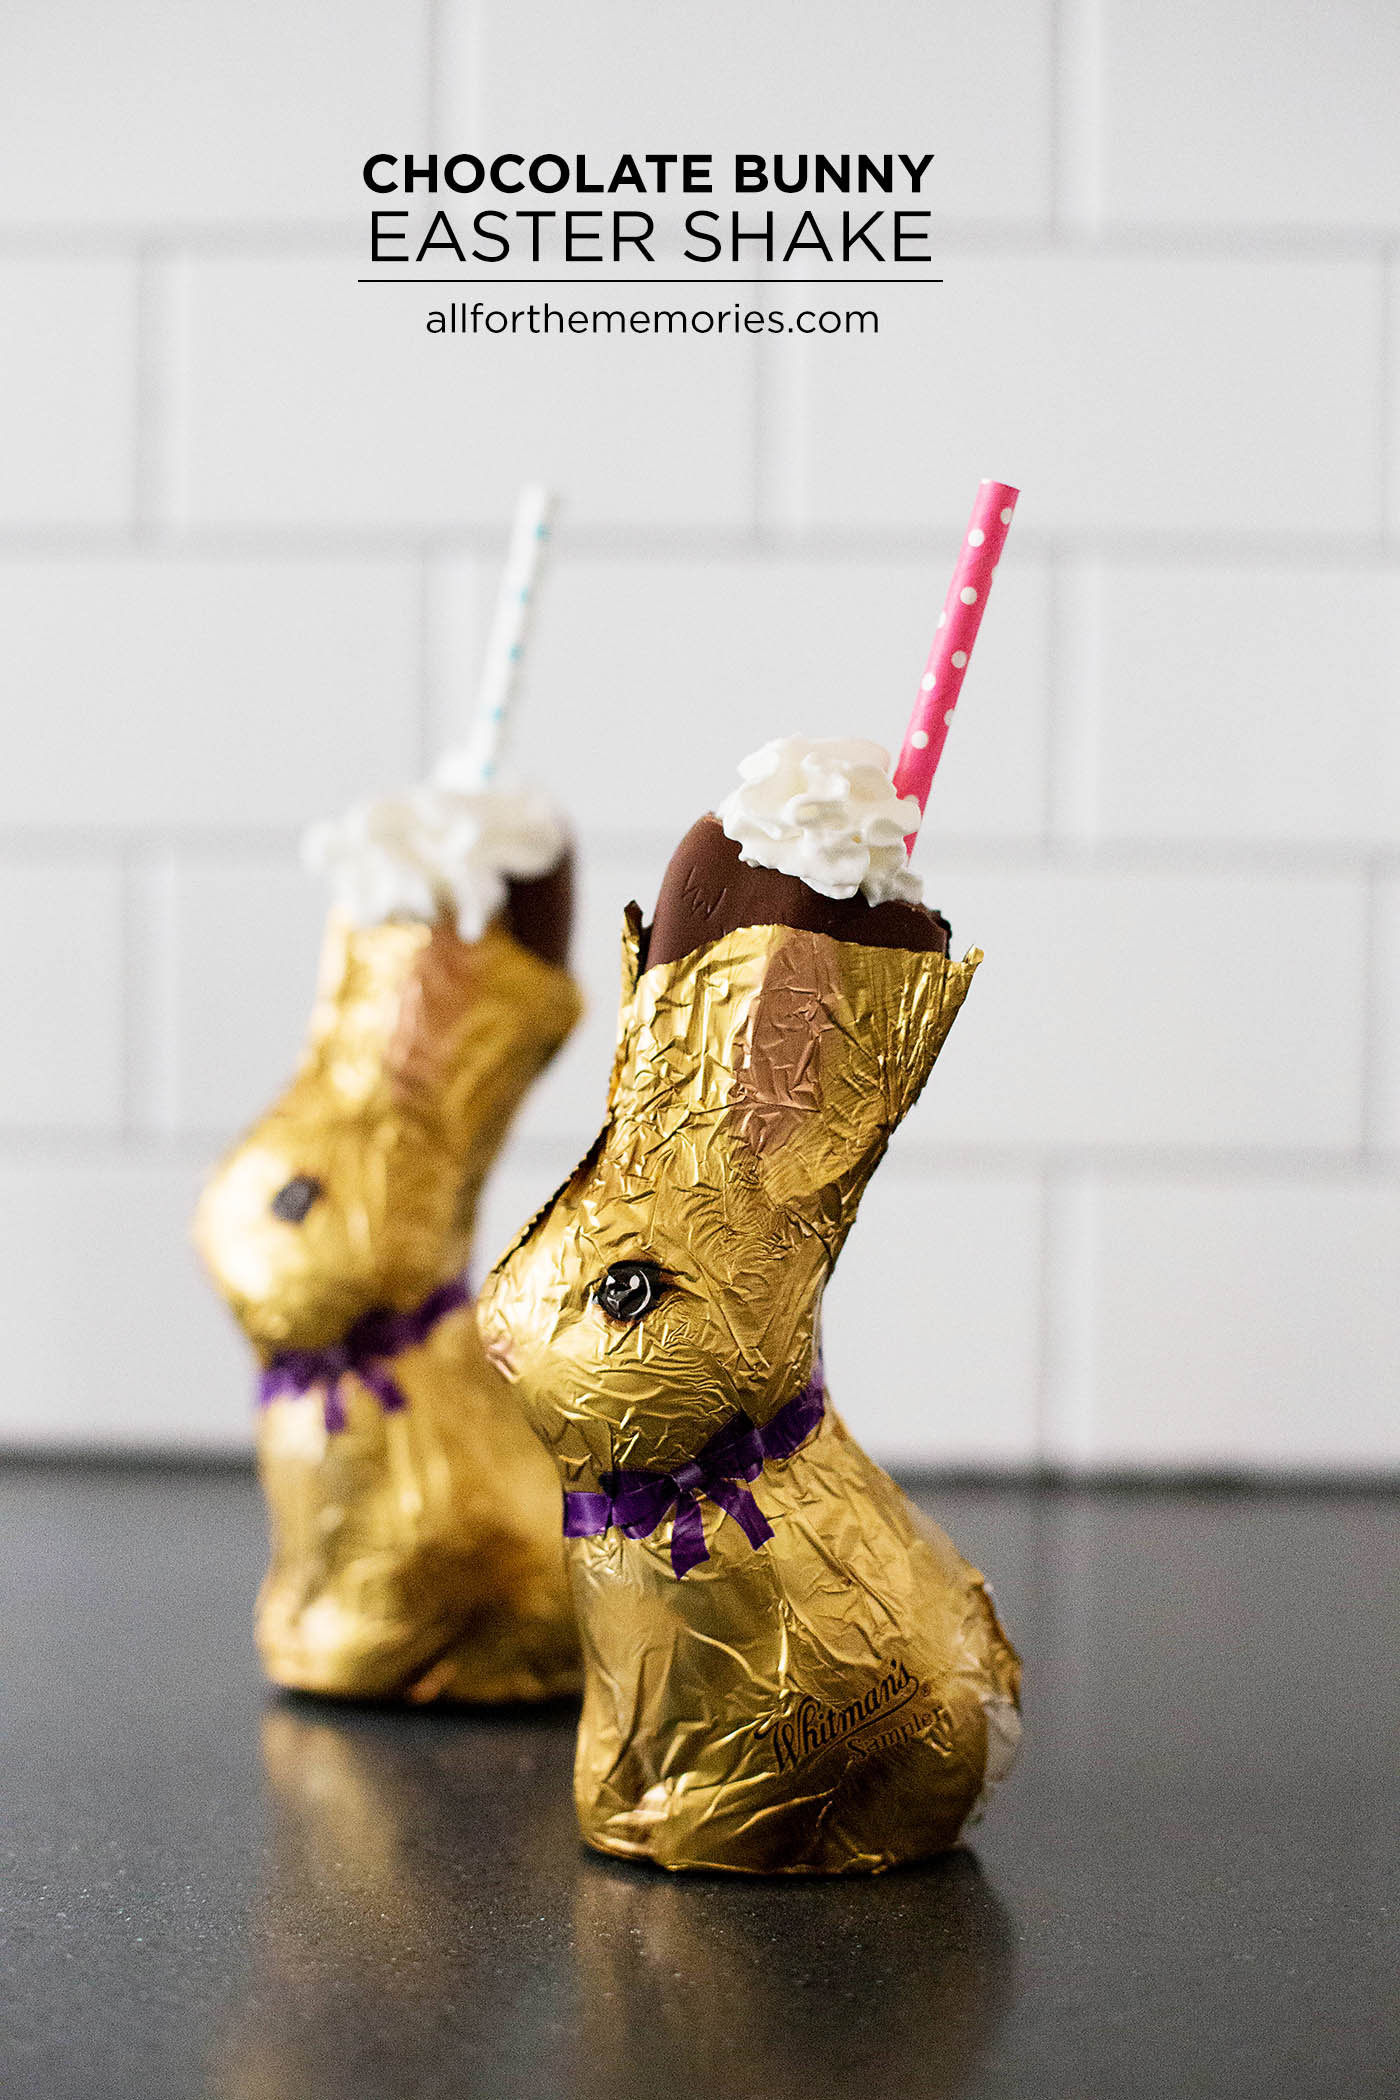 Chocolate Bunny Easter Shake